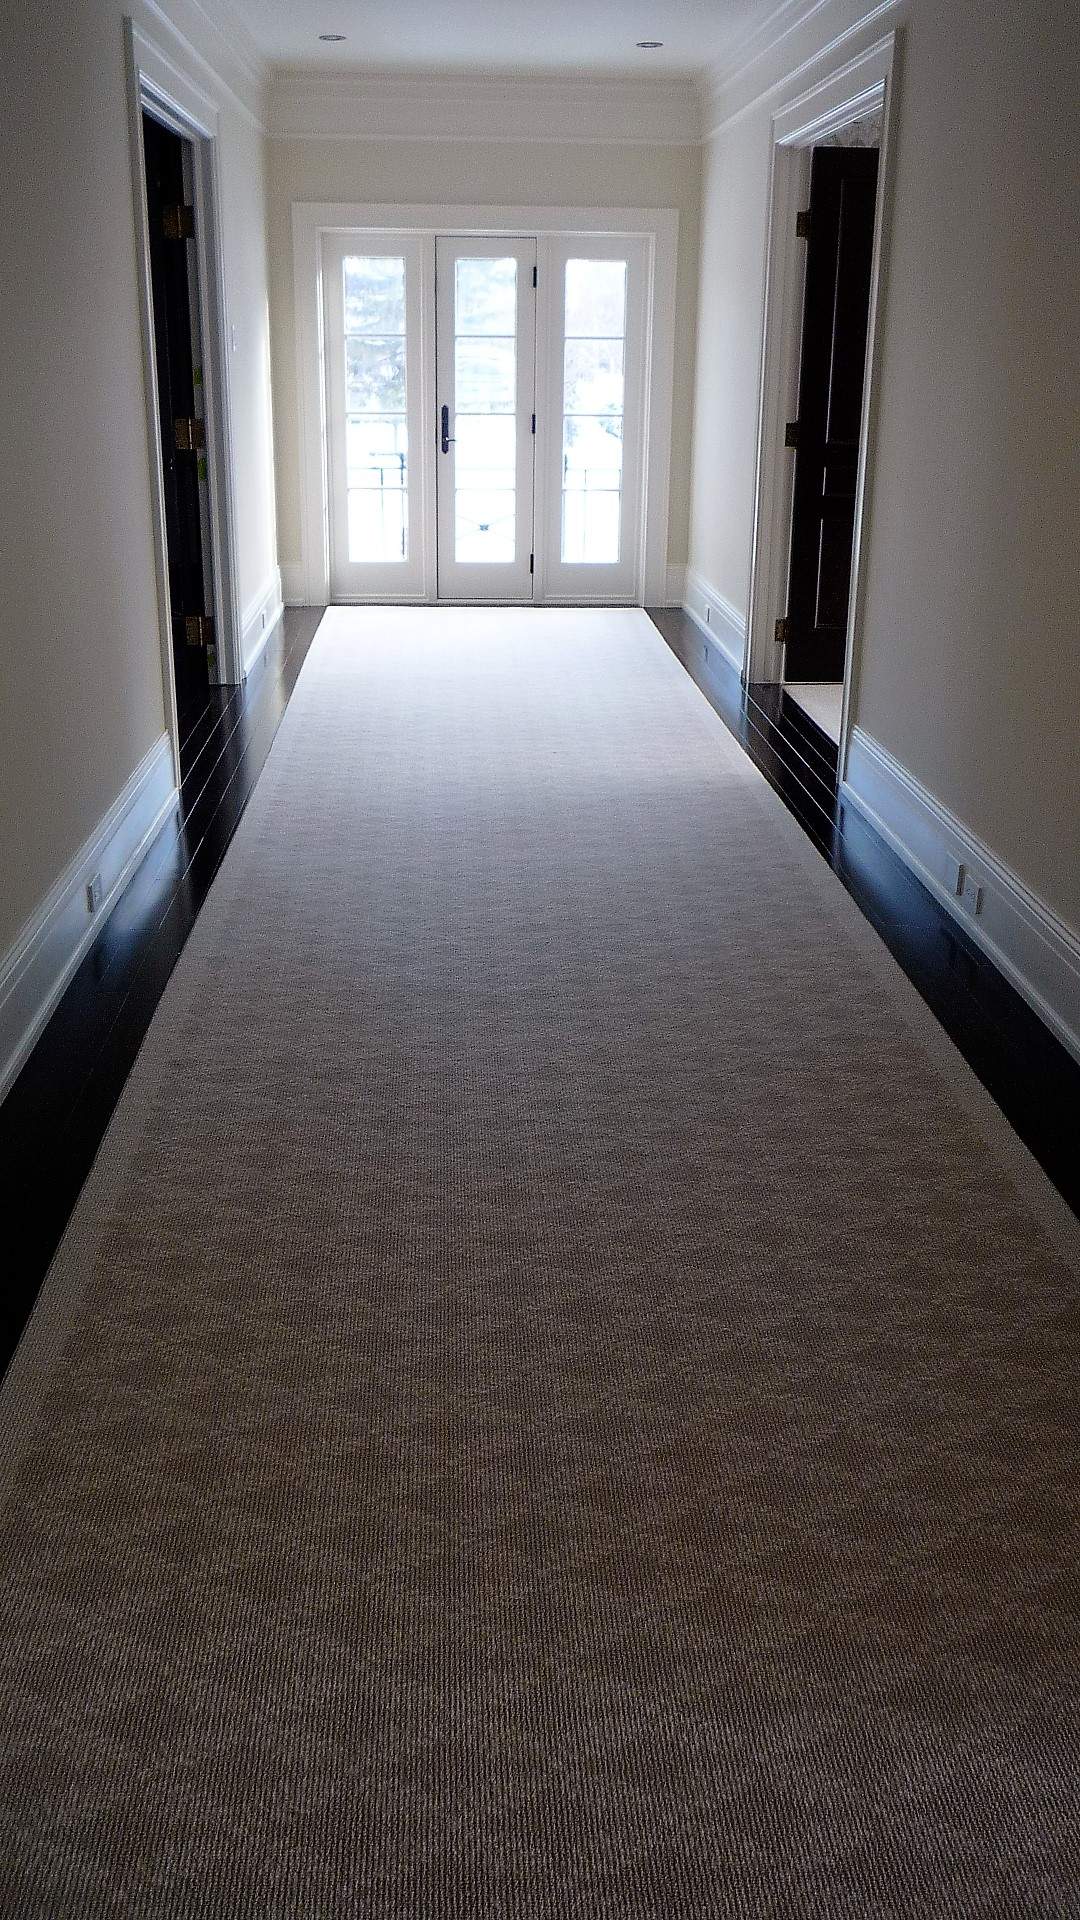 Living area hallway hardwood floors carpet runner.jpg